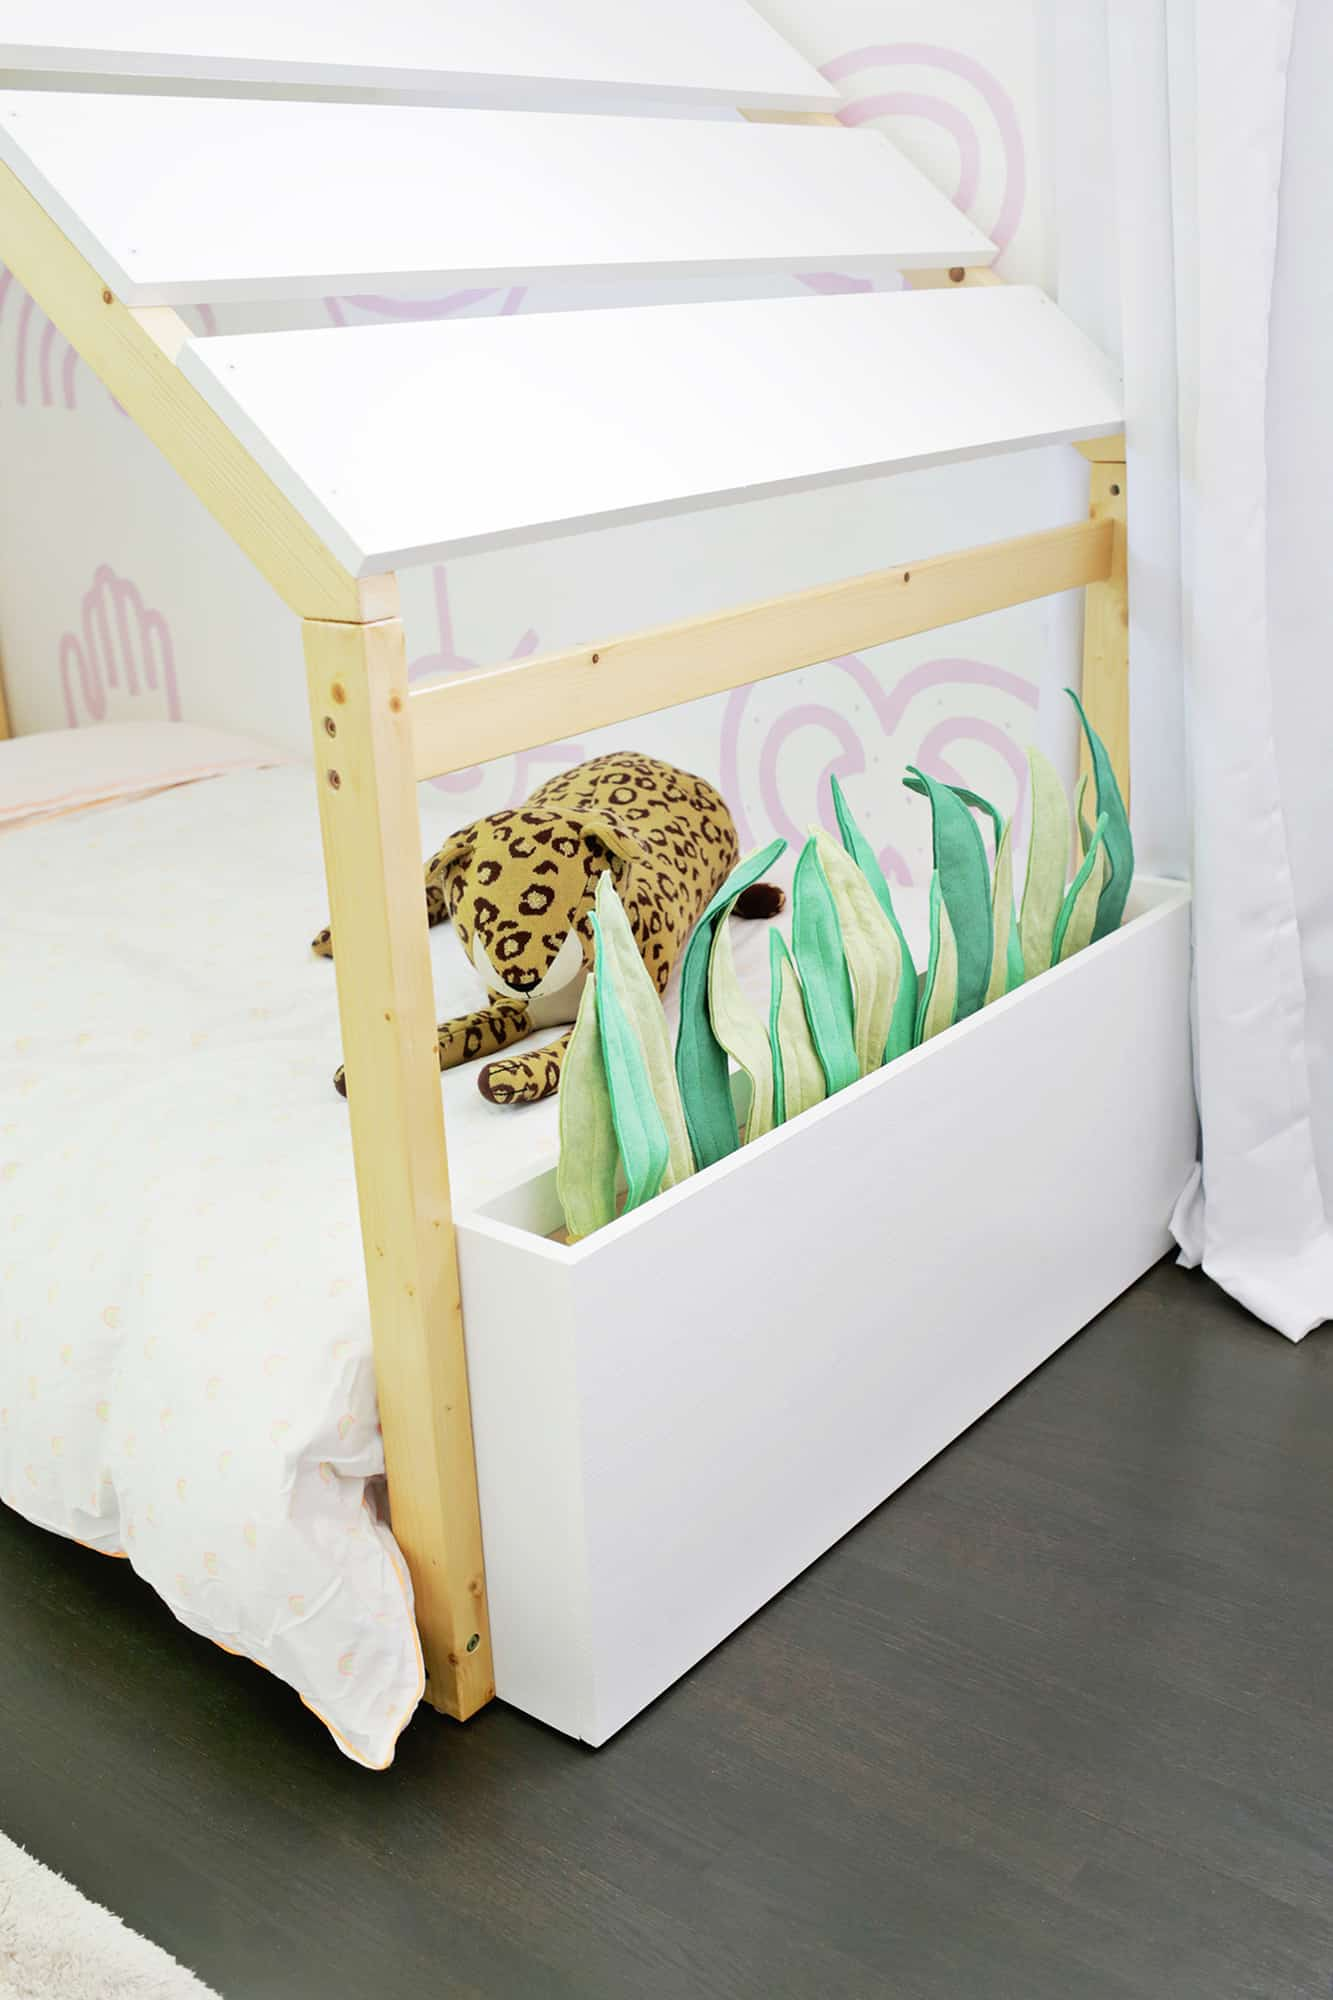 Felt Planter Beds for Kid's Room (With Hidden Toy Storage!)